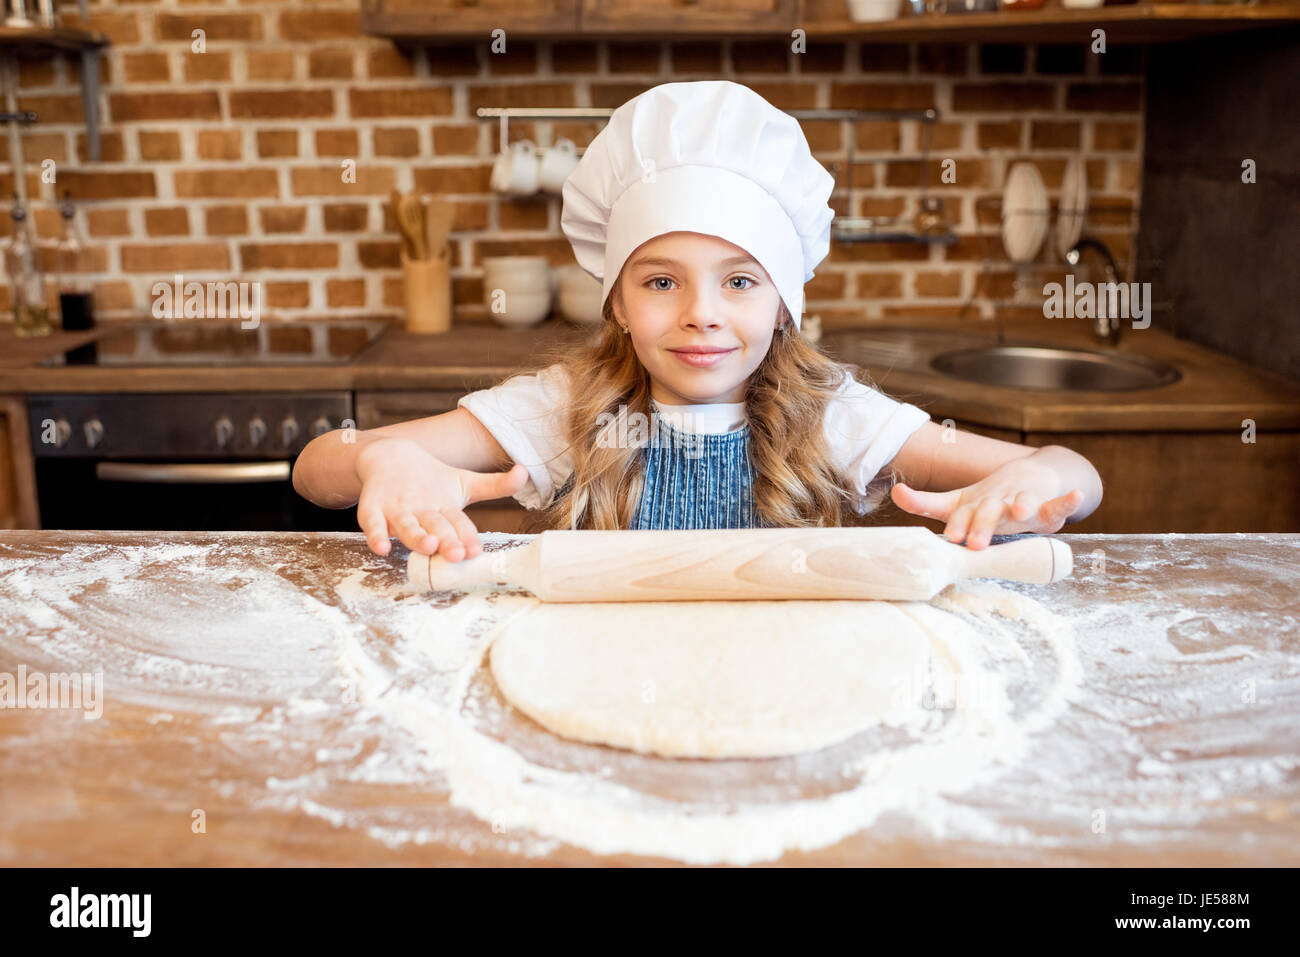 girl in chef hat rolling out raw pizza dough - Stock Image